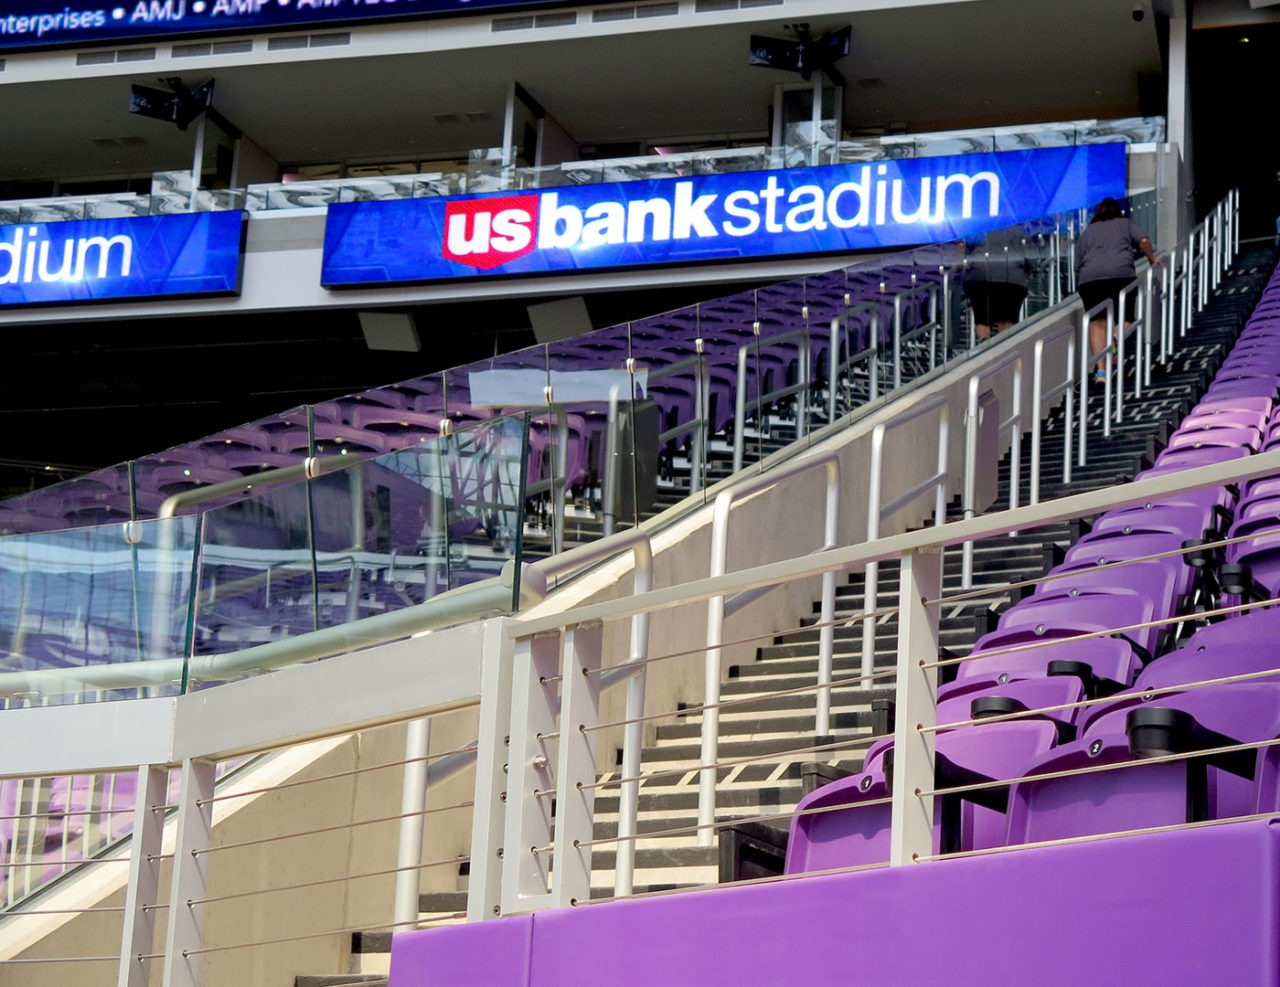 Custom cable railing at U. S. Bank Stadium